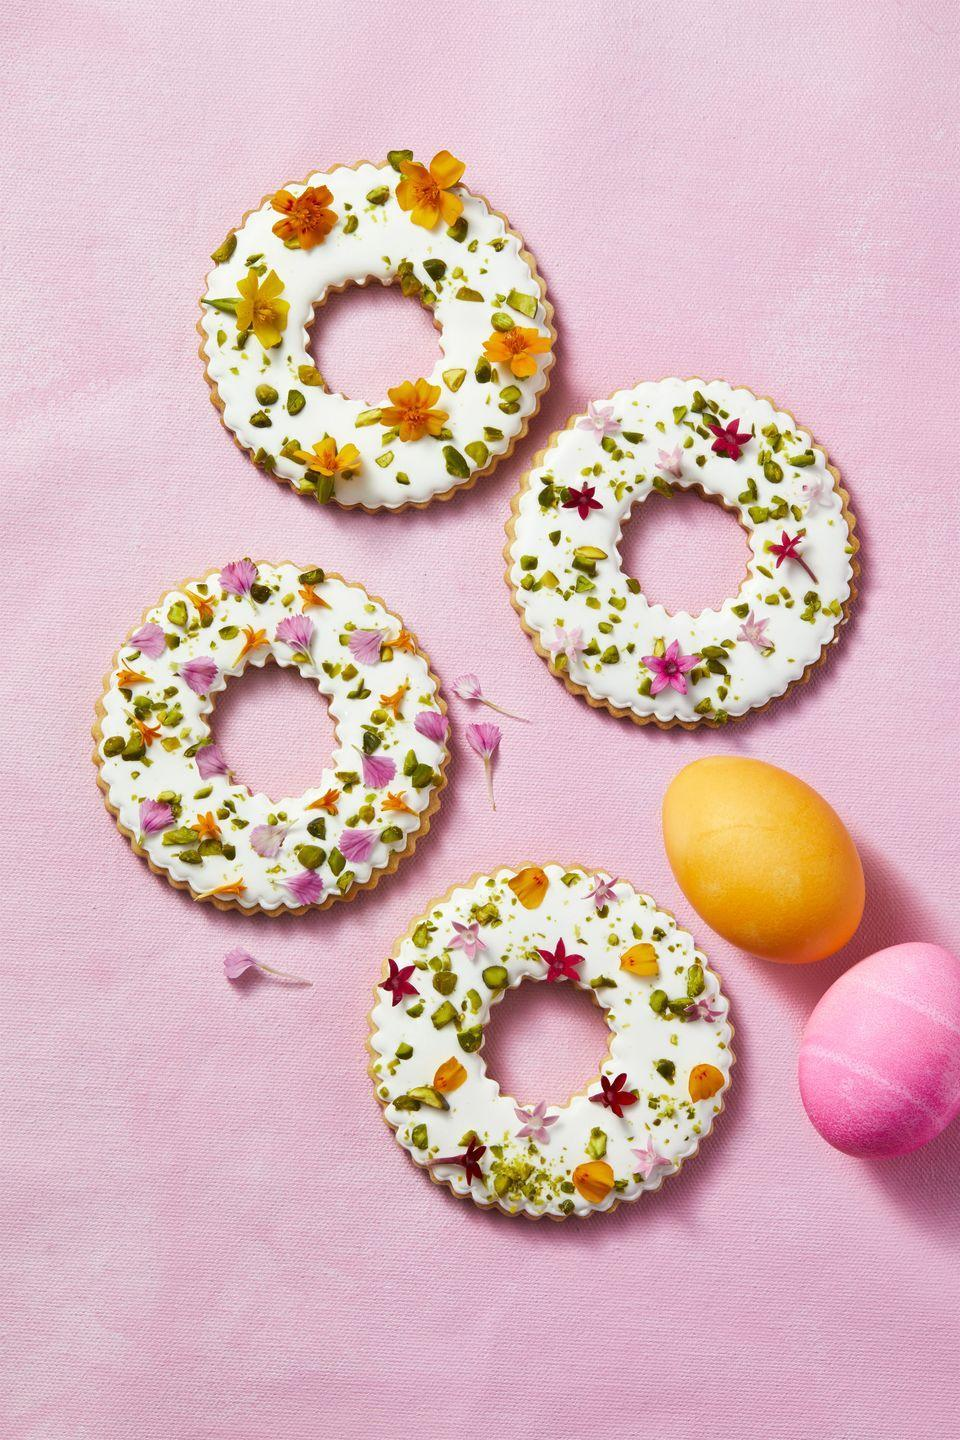 "<p>Use fluted circle cutters to cut rings from <a href=""https://www.goodhousekeeping.com/food-recipes/a6874/sugar-cookies-4477/"" rel=""nofollow noopener"" target=""_blank"" data-ylk=""slk:sugar cookie dough"" class=""link rapid-noclick-resp"">sugar cookie dough</a>, then bake and decorate with <a href=""https://www.goodhousekeeping.com/food-recipes/a28565256/royal-icing-recipe/"" rel=""nofollow noopener"" target=""_blank"" data-ylk=""slk:royal icing"" class=""link rapid-noclick-resp"">royal icing</a>. Before the icing sets, sprinkle with chopped pistachios and edible flowers. </p>"